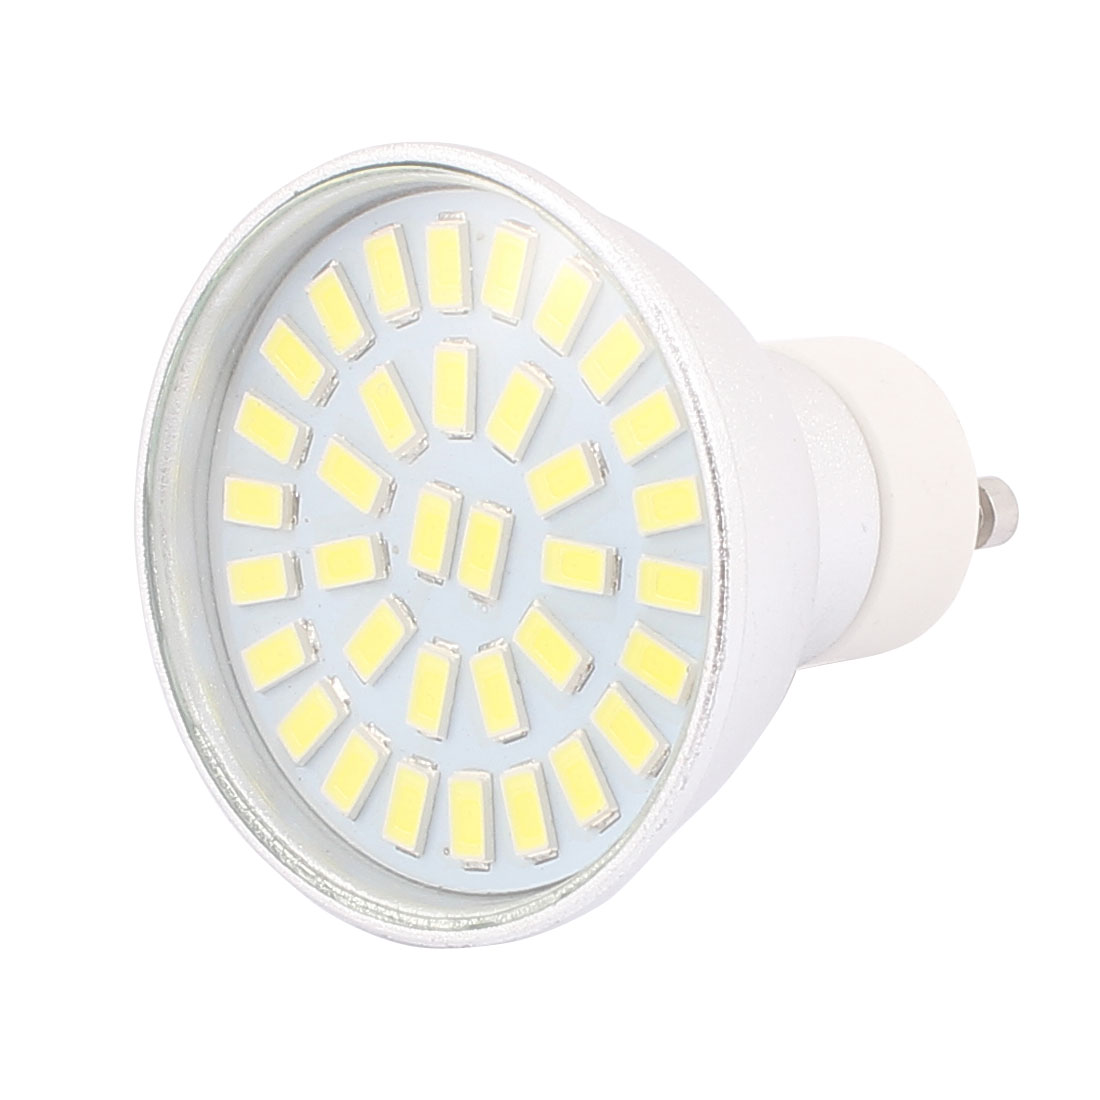 220V-240V GU10 LED Light 5W 5730 SMD 35 LEDs Spotlight Down Lamp Bulb Energy Saving Pure White